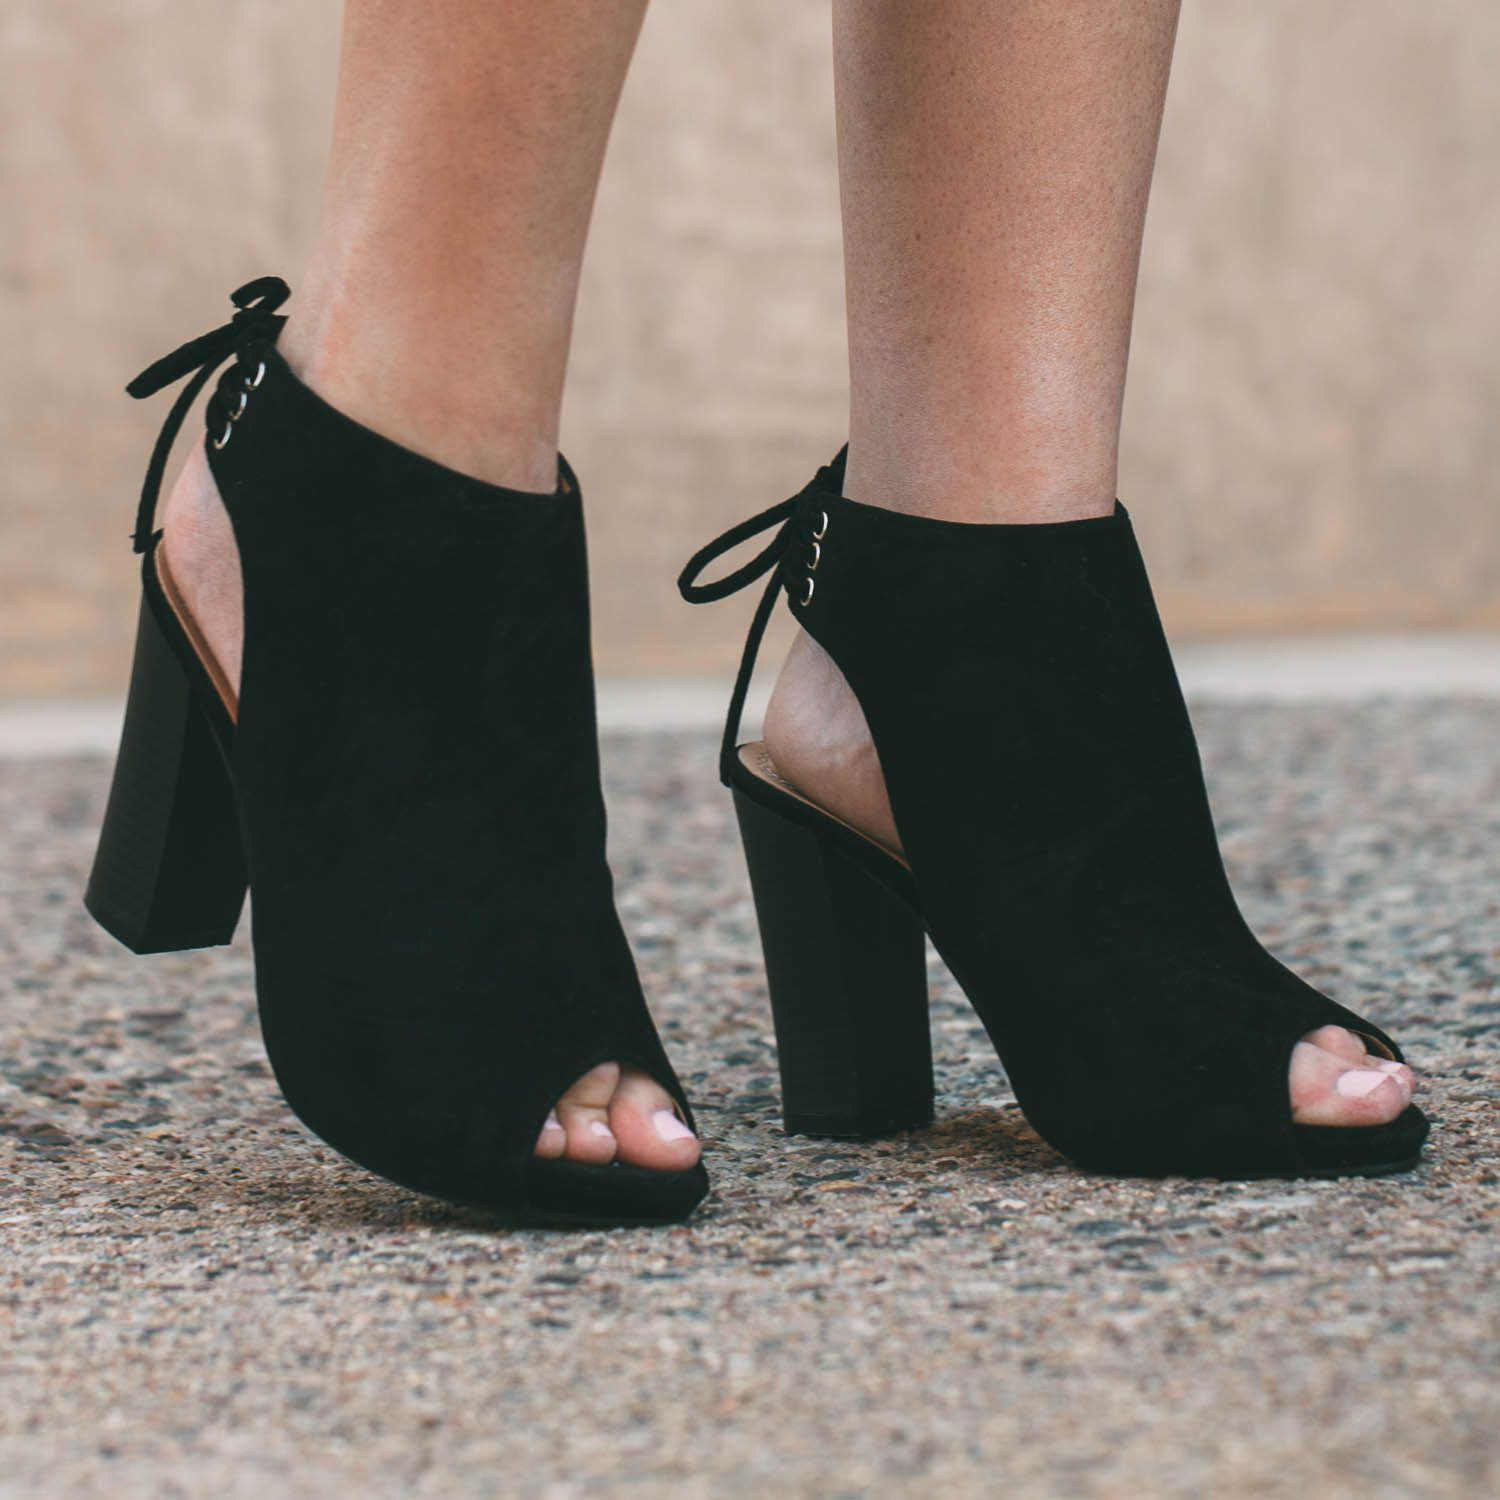 The party never ends in these black Party People Heels! Featuring ...